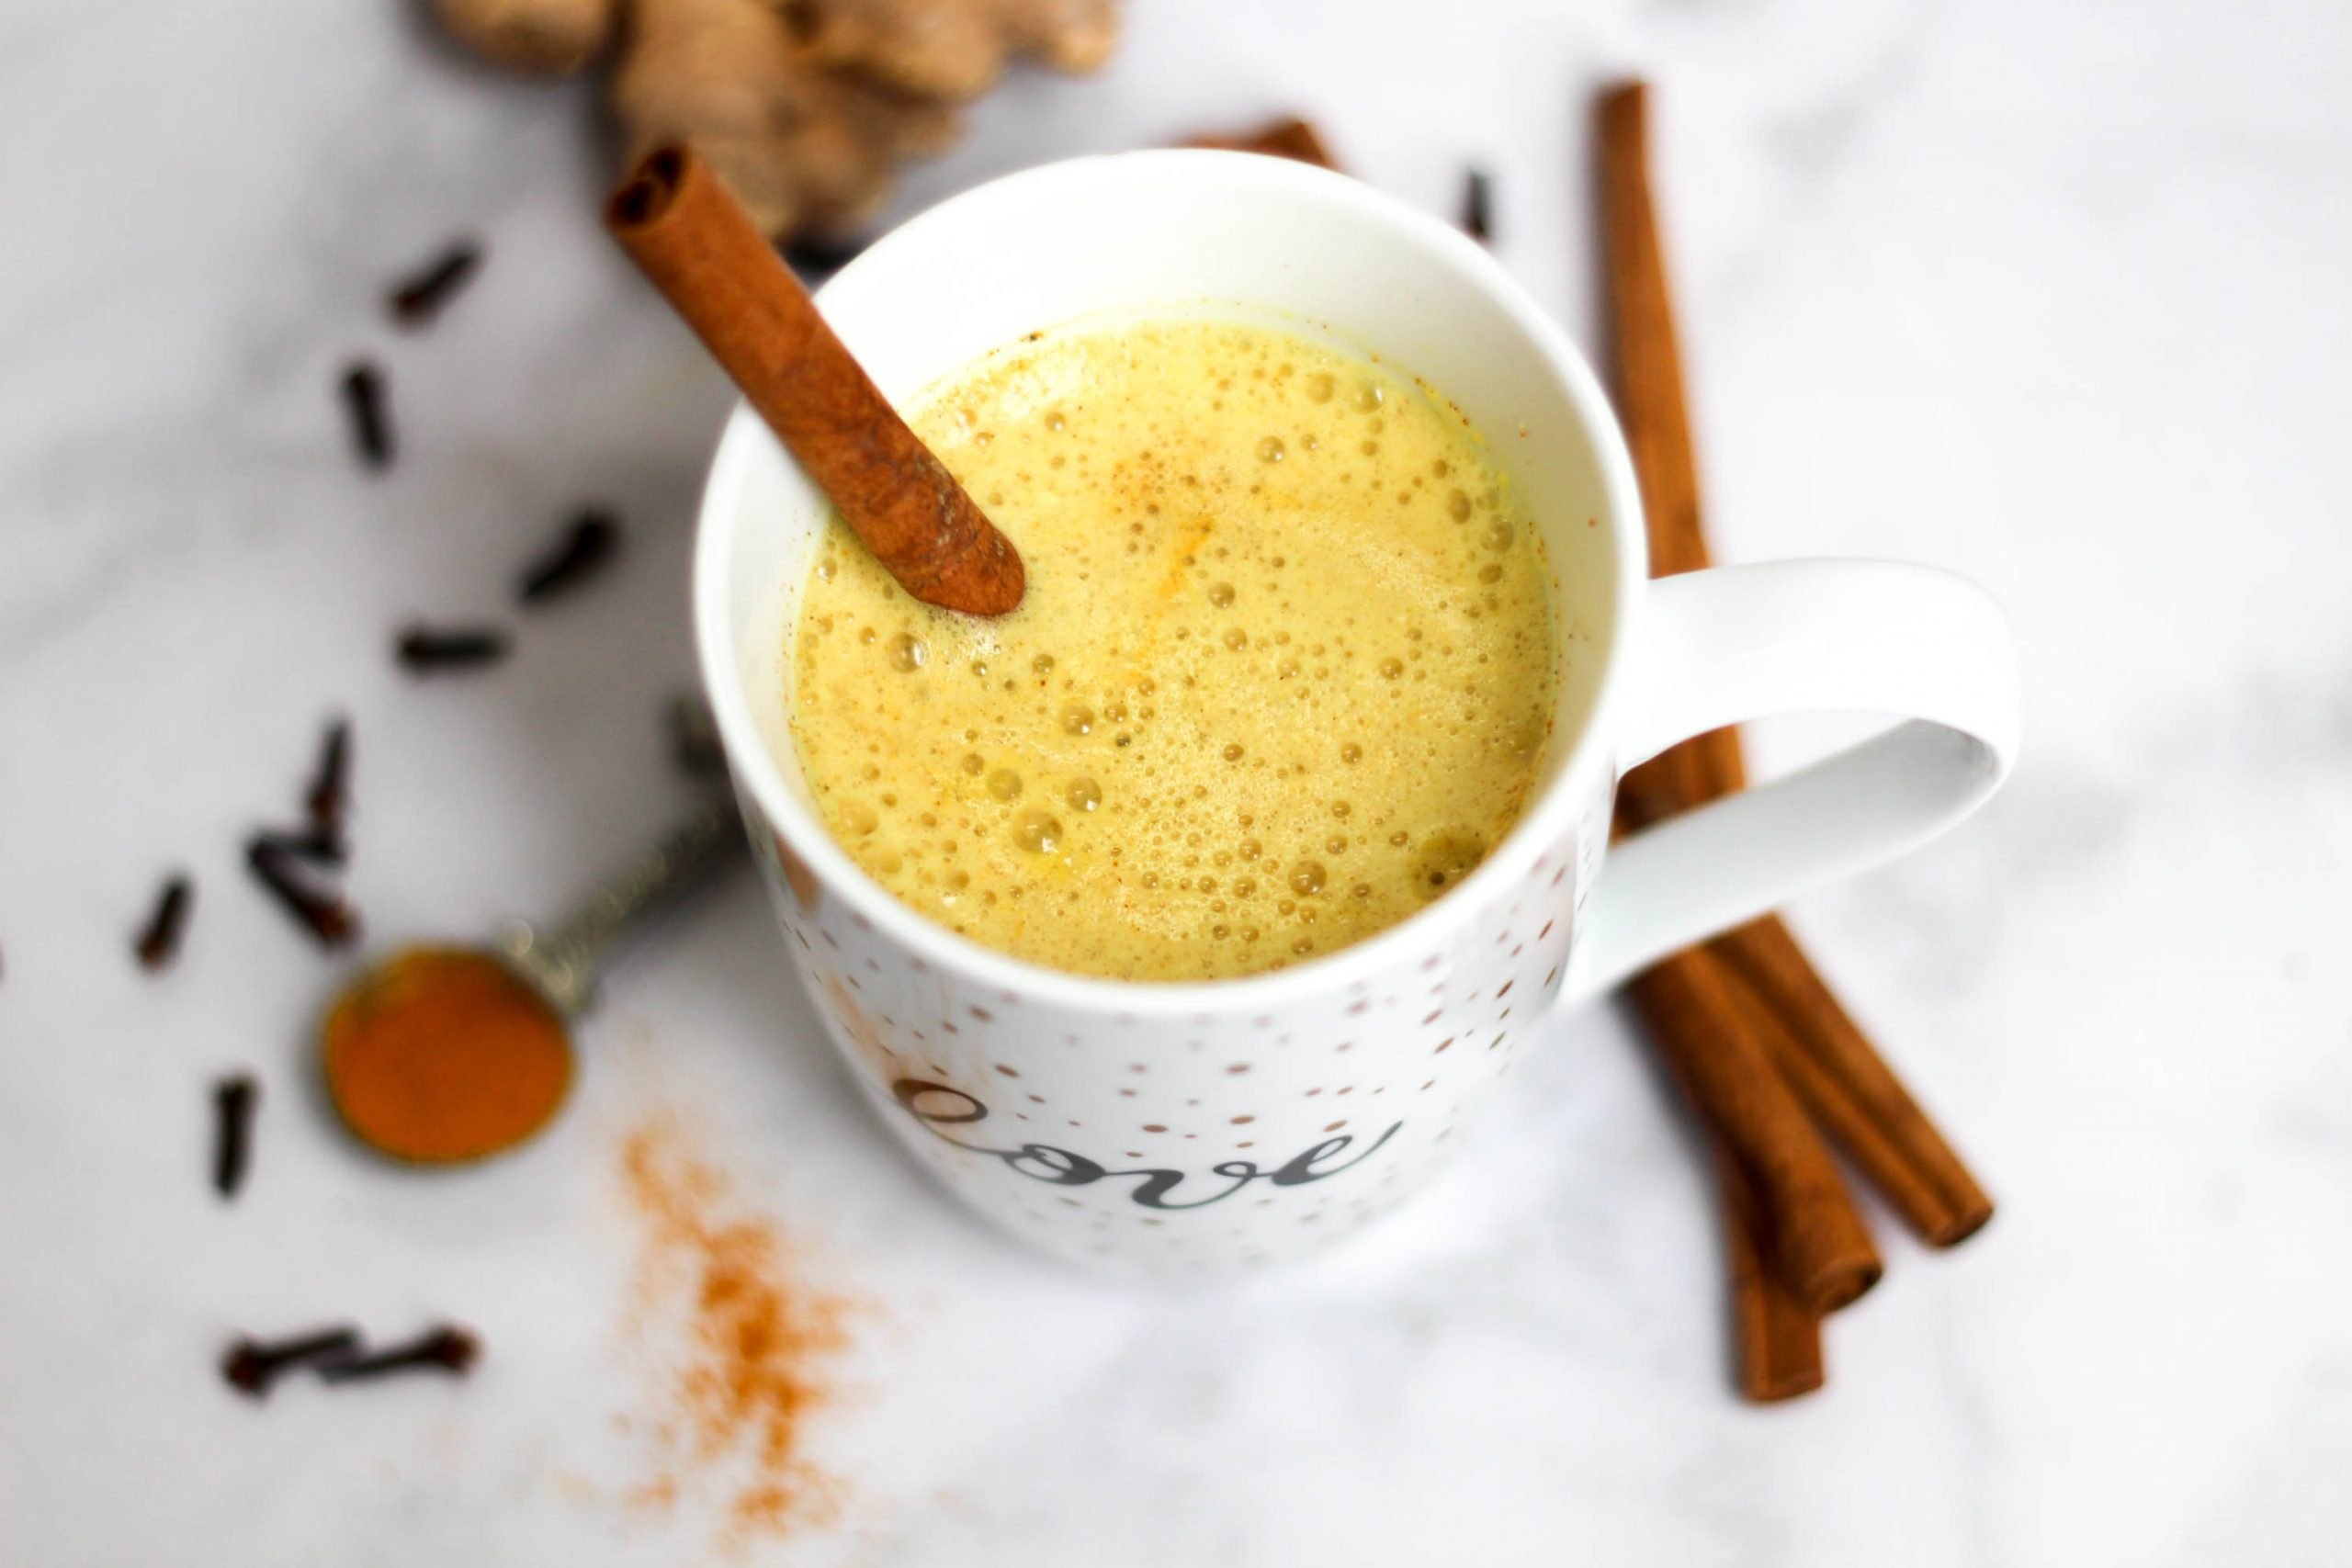 The golden milk latte! A delicious, healthy, and soothing concoction, also known as turmeric tea. It's lightly sweet and packed with nutrients and healing properties. fitnessista.com